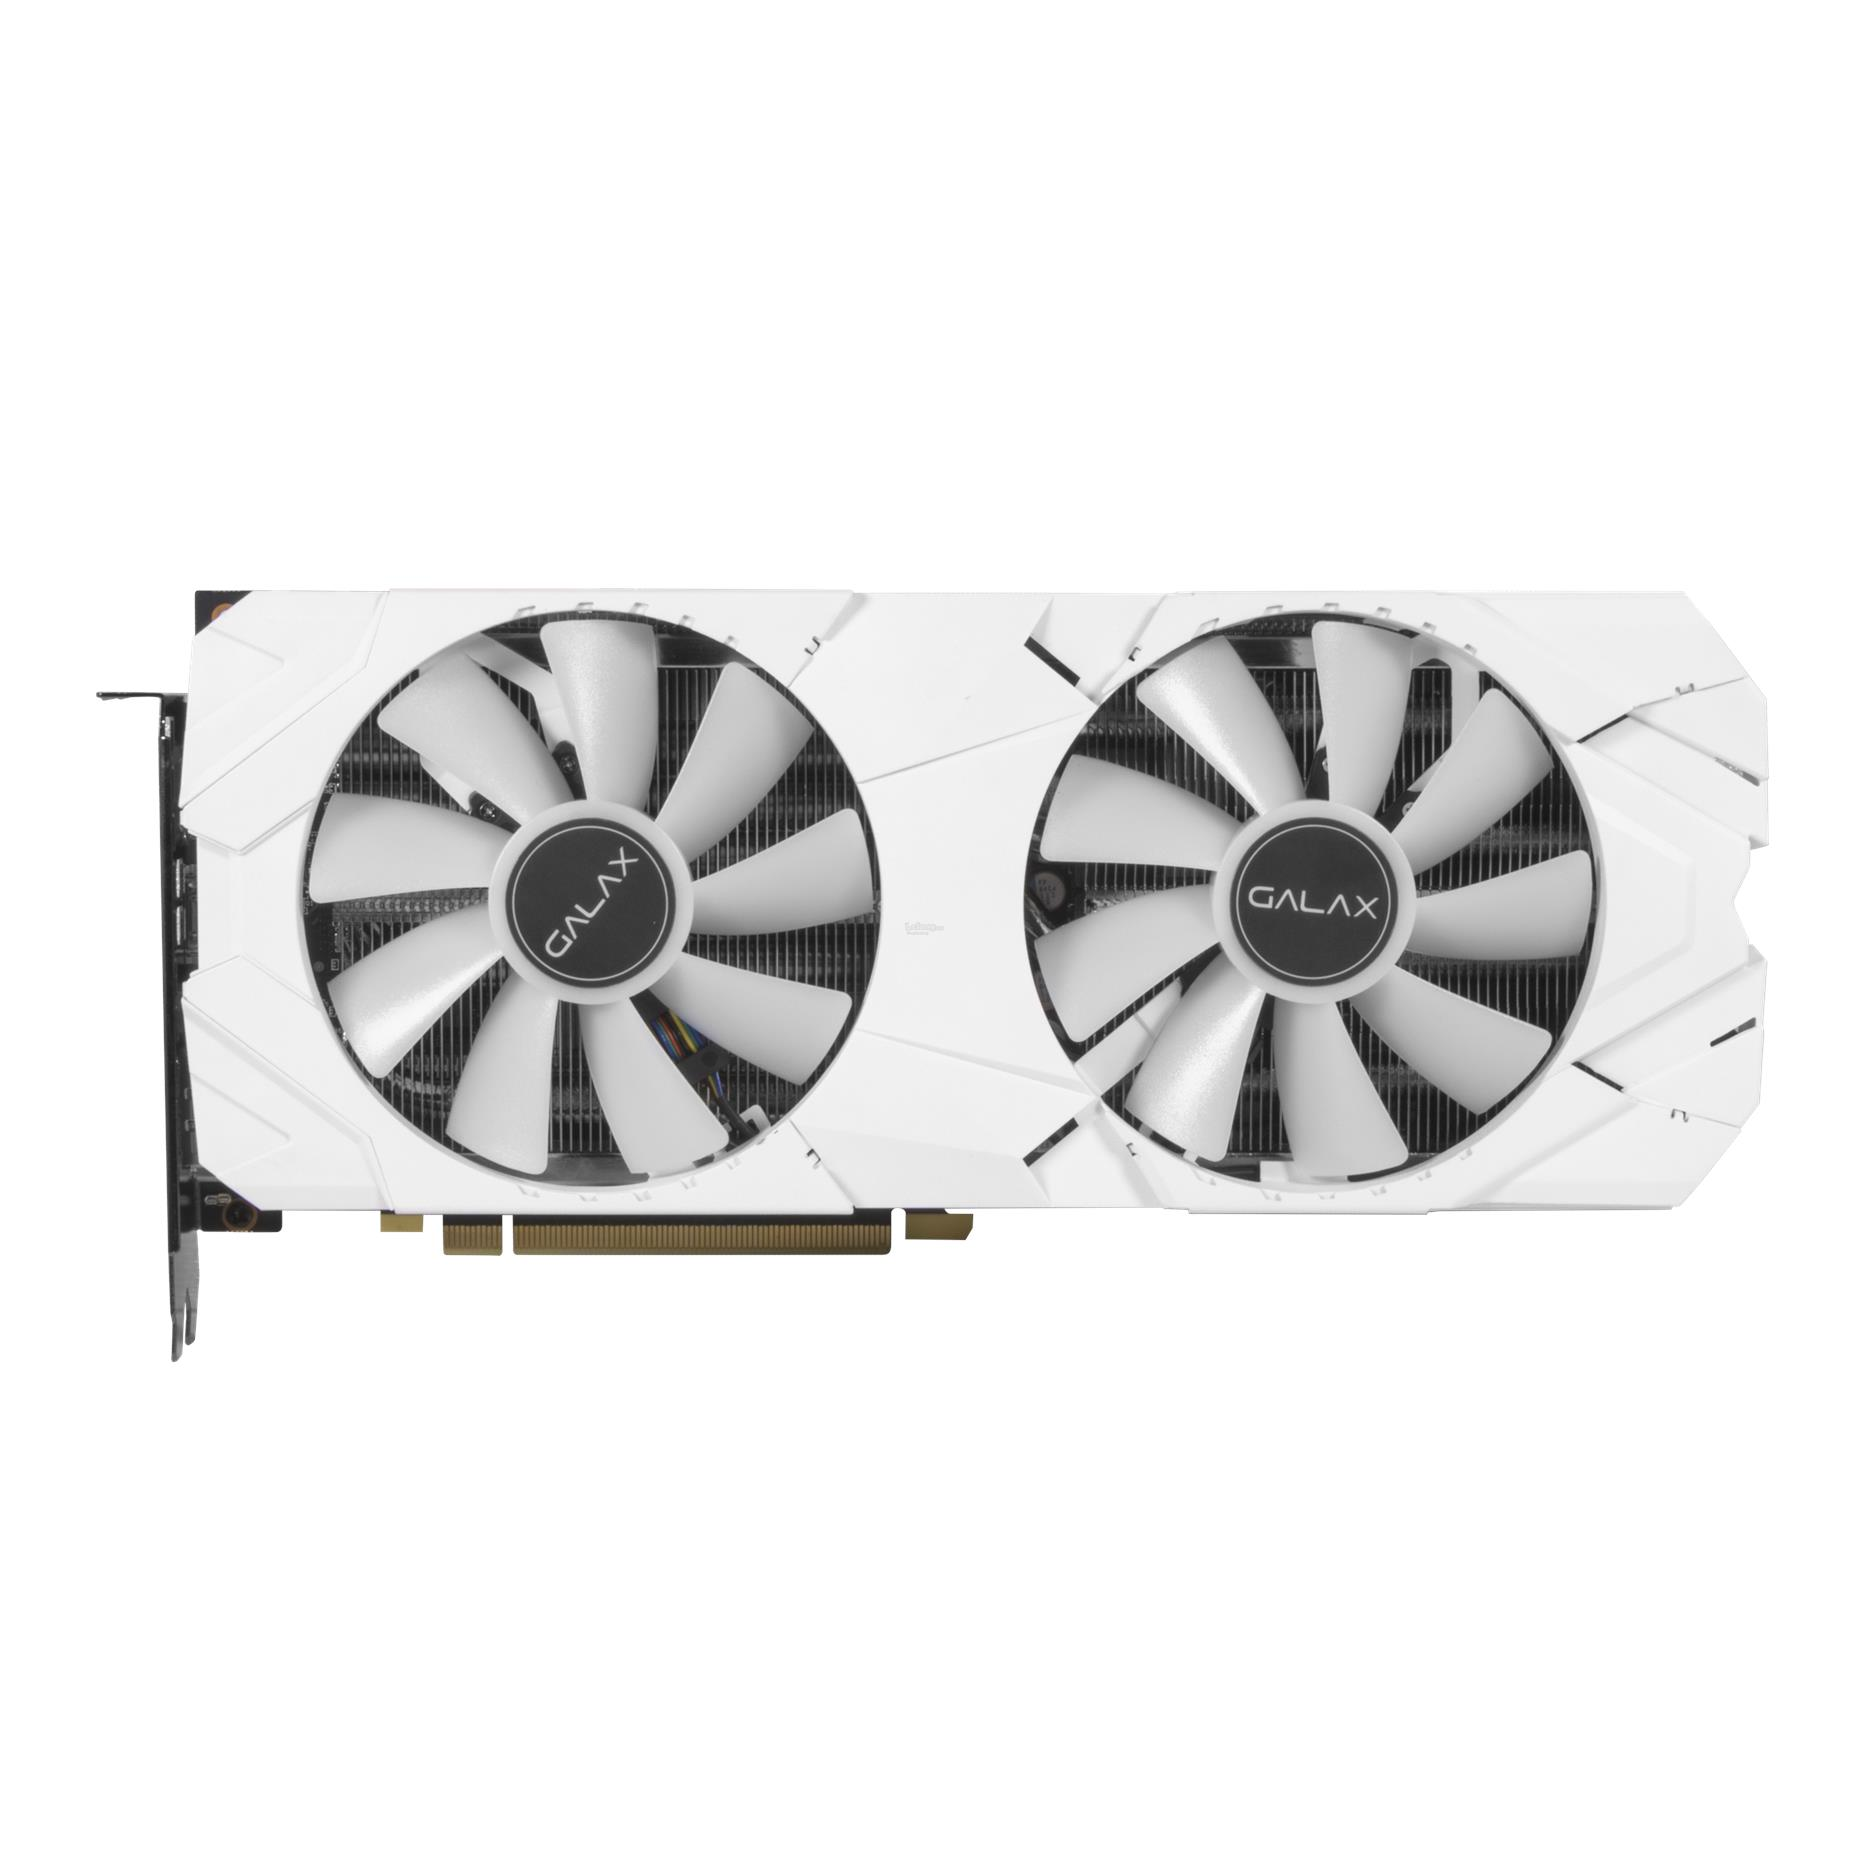 # GALAX GeForce RTX 2070 White (1-Click OC) # 8GB/GDDR6 | 1620MHz